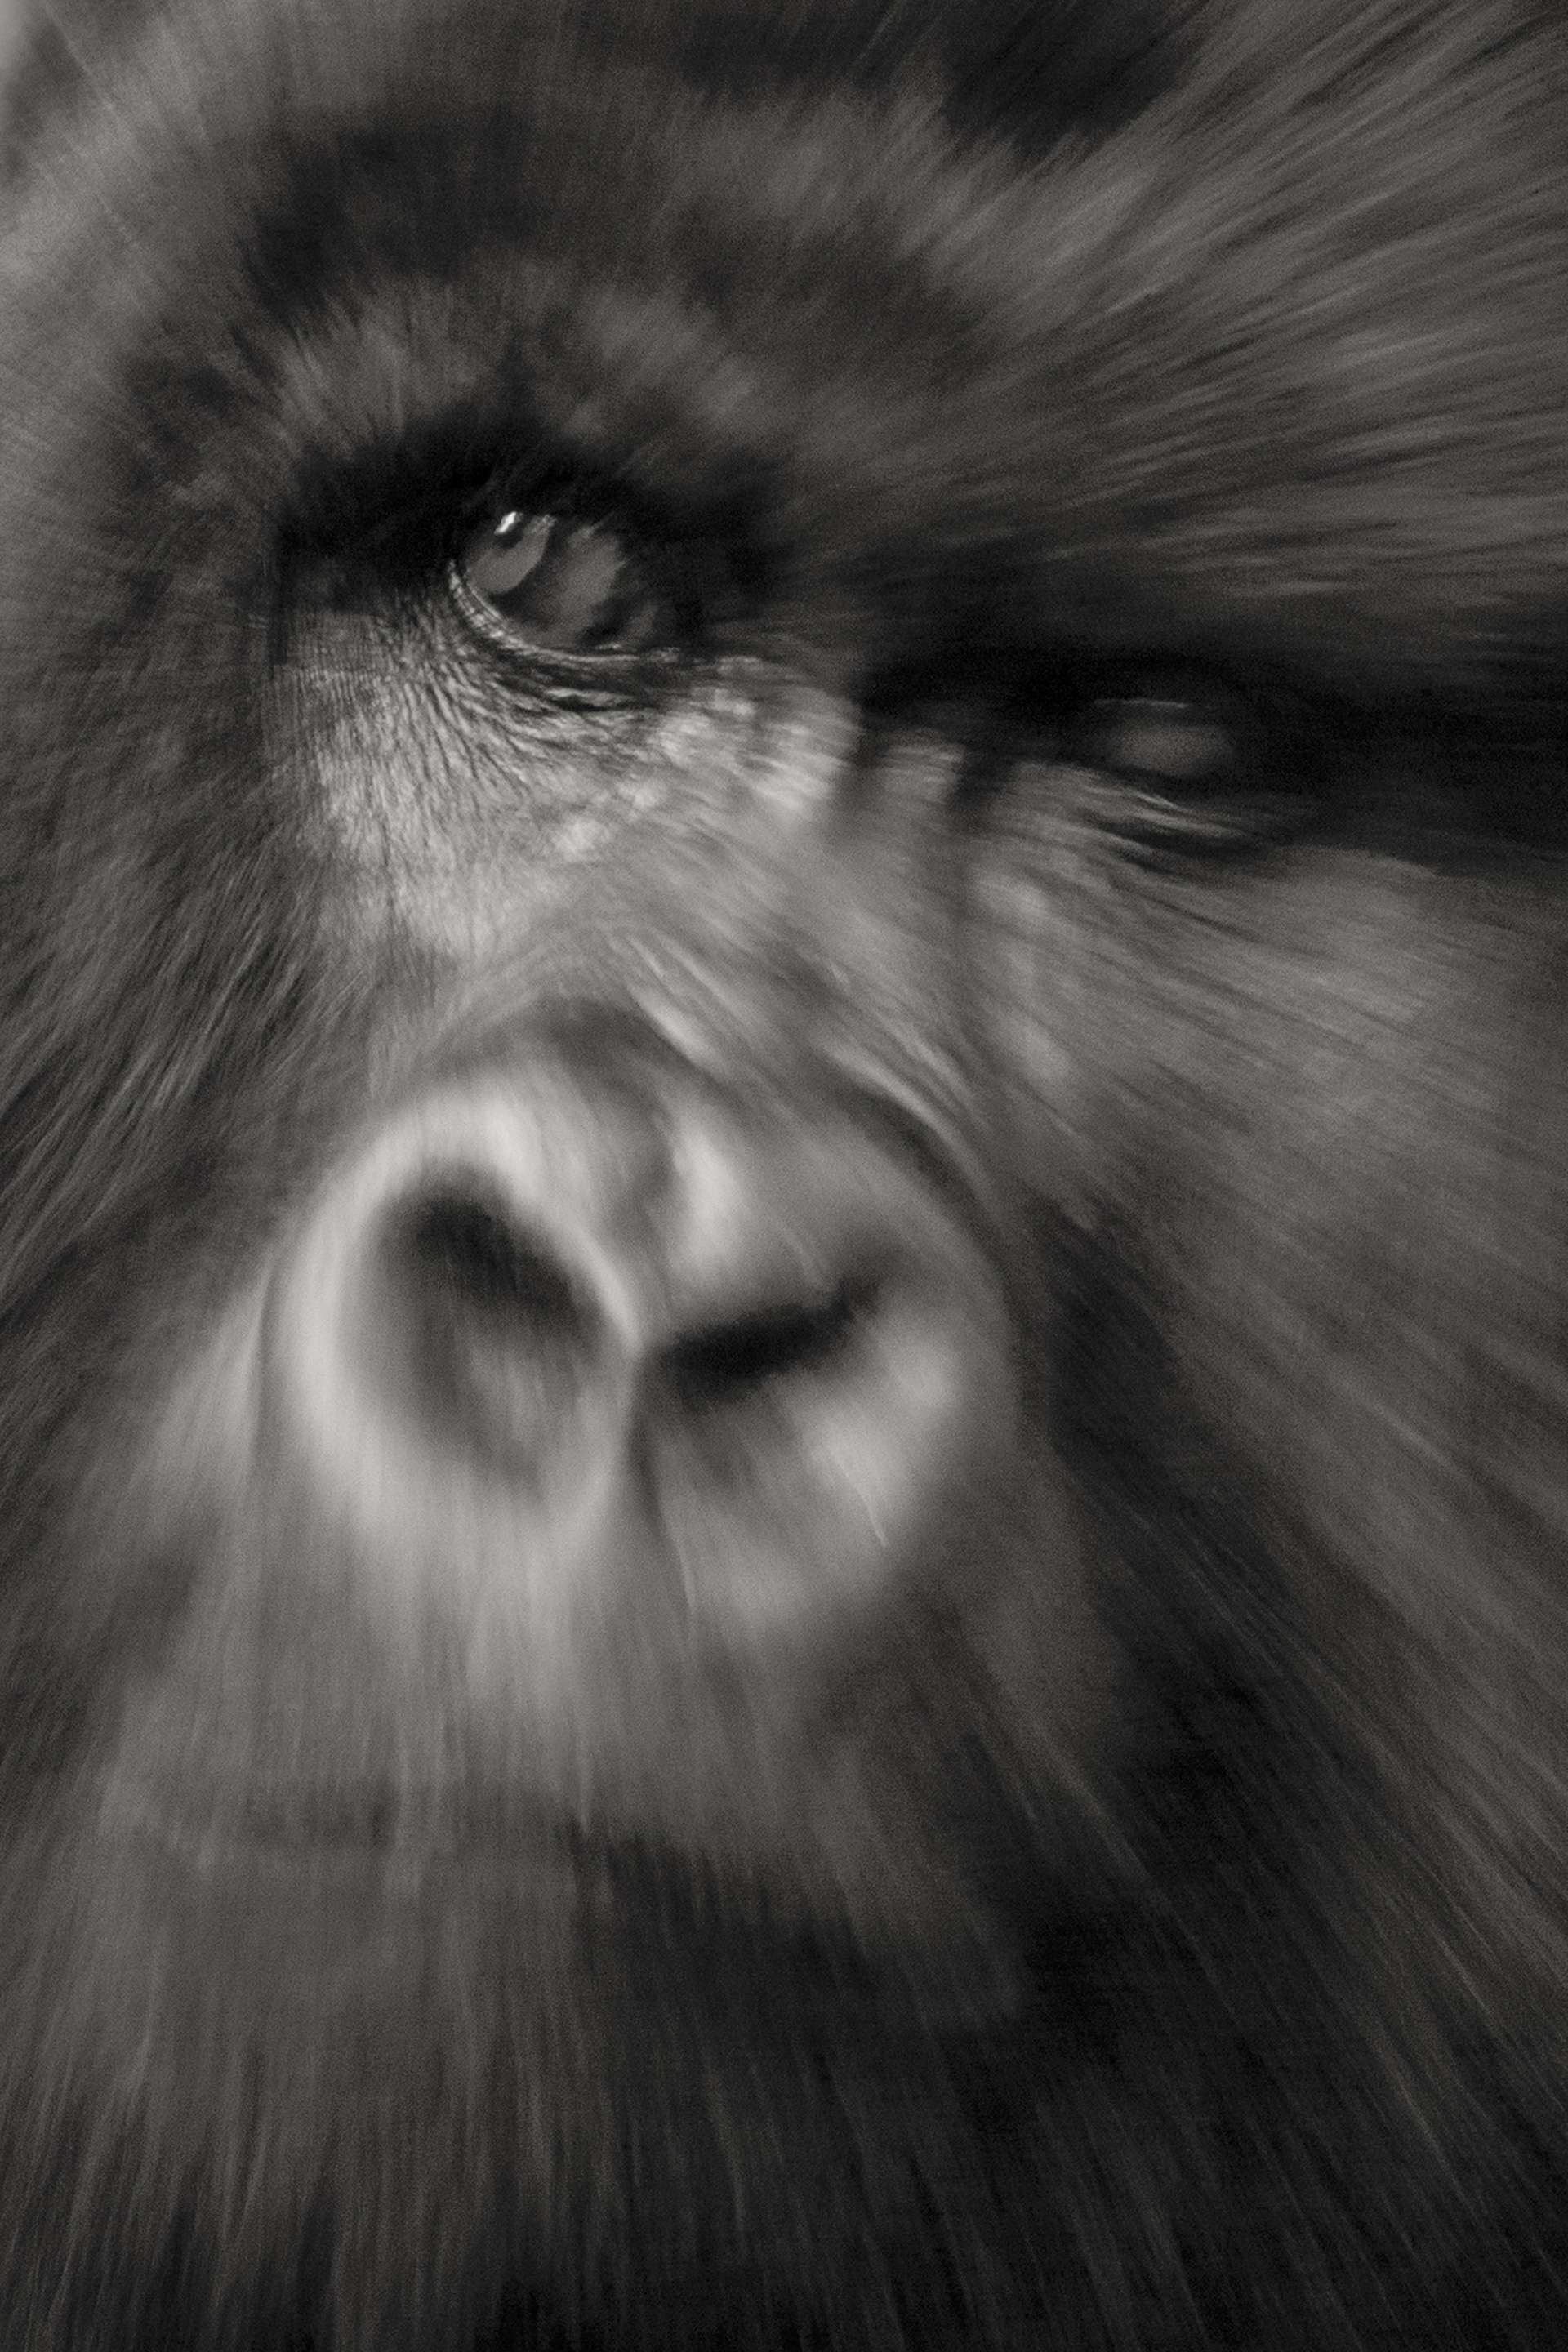 Gilles Martin's photograph of a gorilla from Uganda